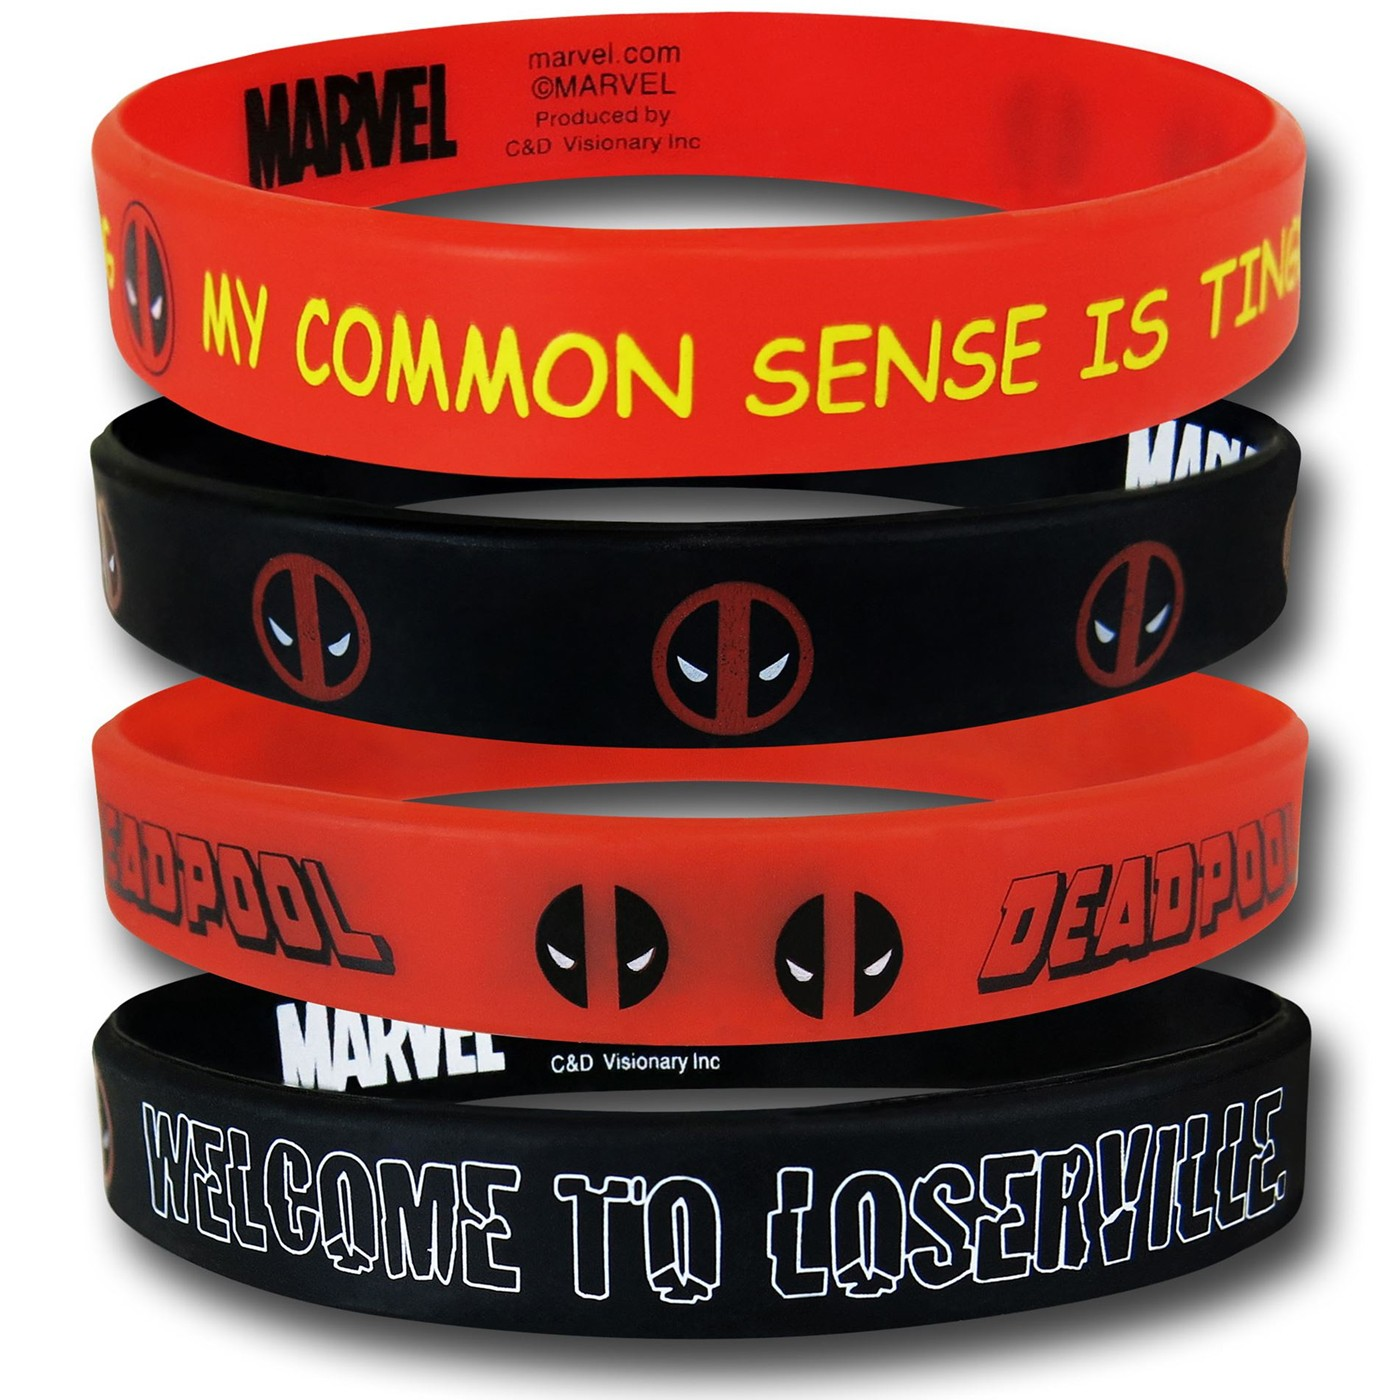 Deadpool Wristband Set